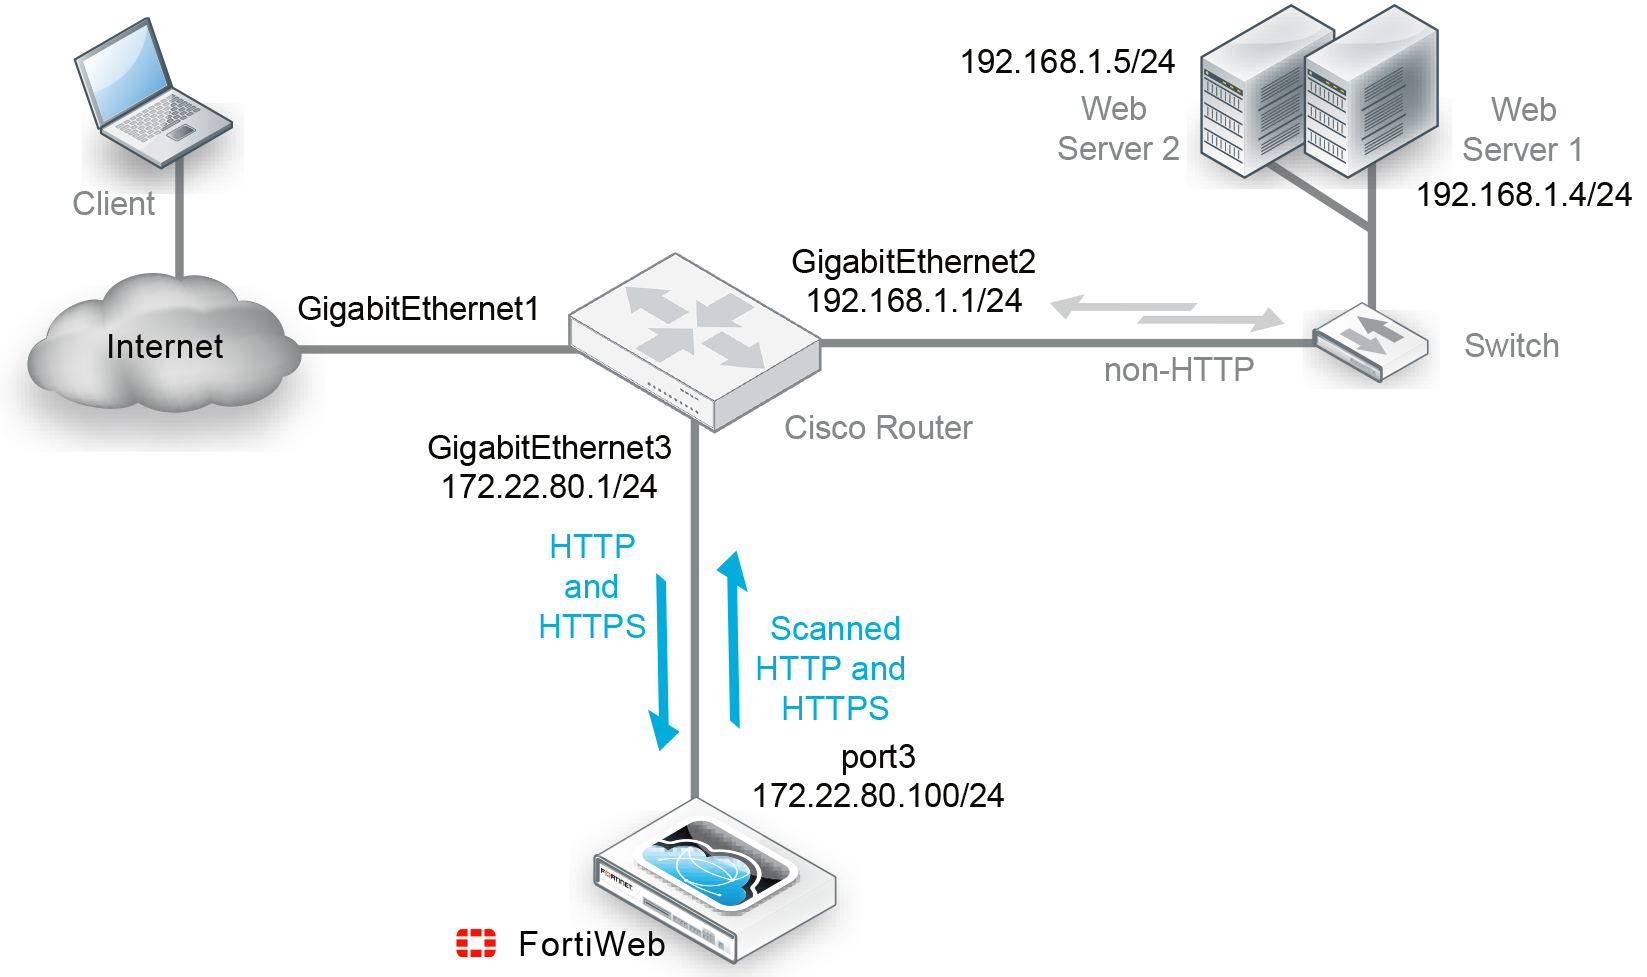 Configuring FortiWeb to receive traffic via WCCP